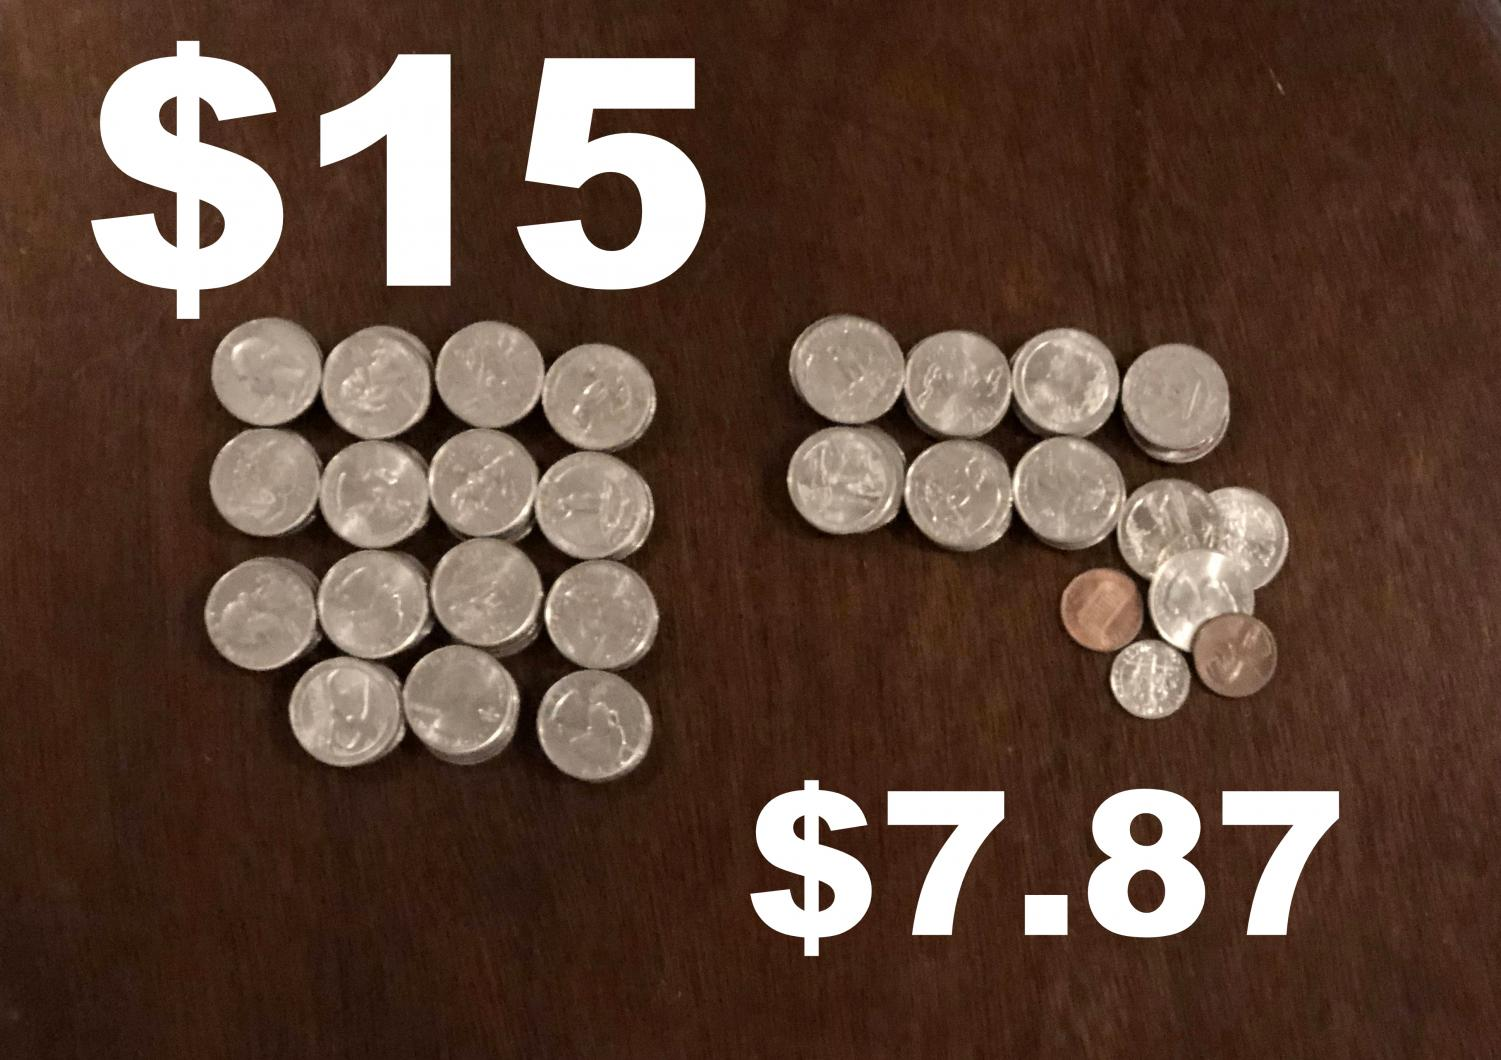 Visual comparison of $15 (the newly proposed minimum) to $7.87 (the old minimum wage).